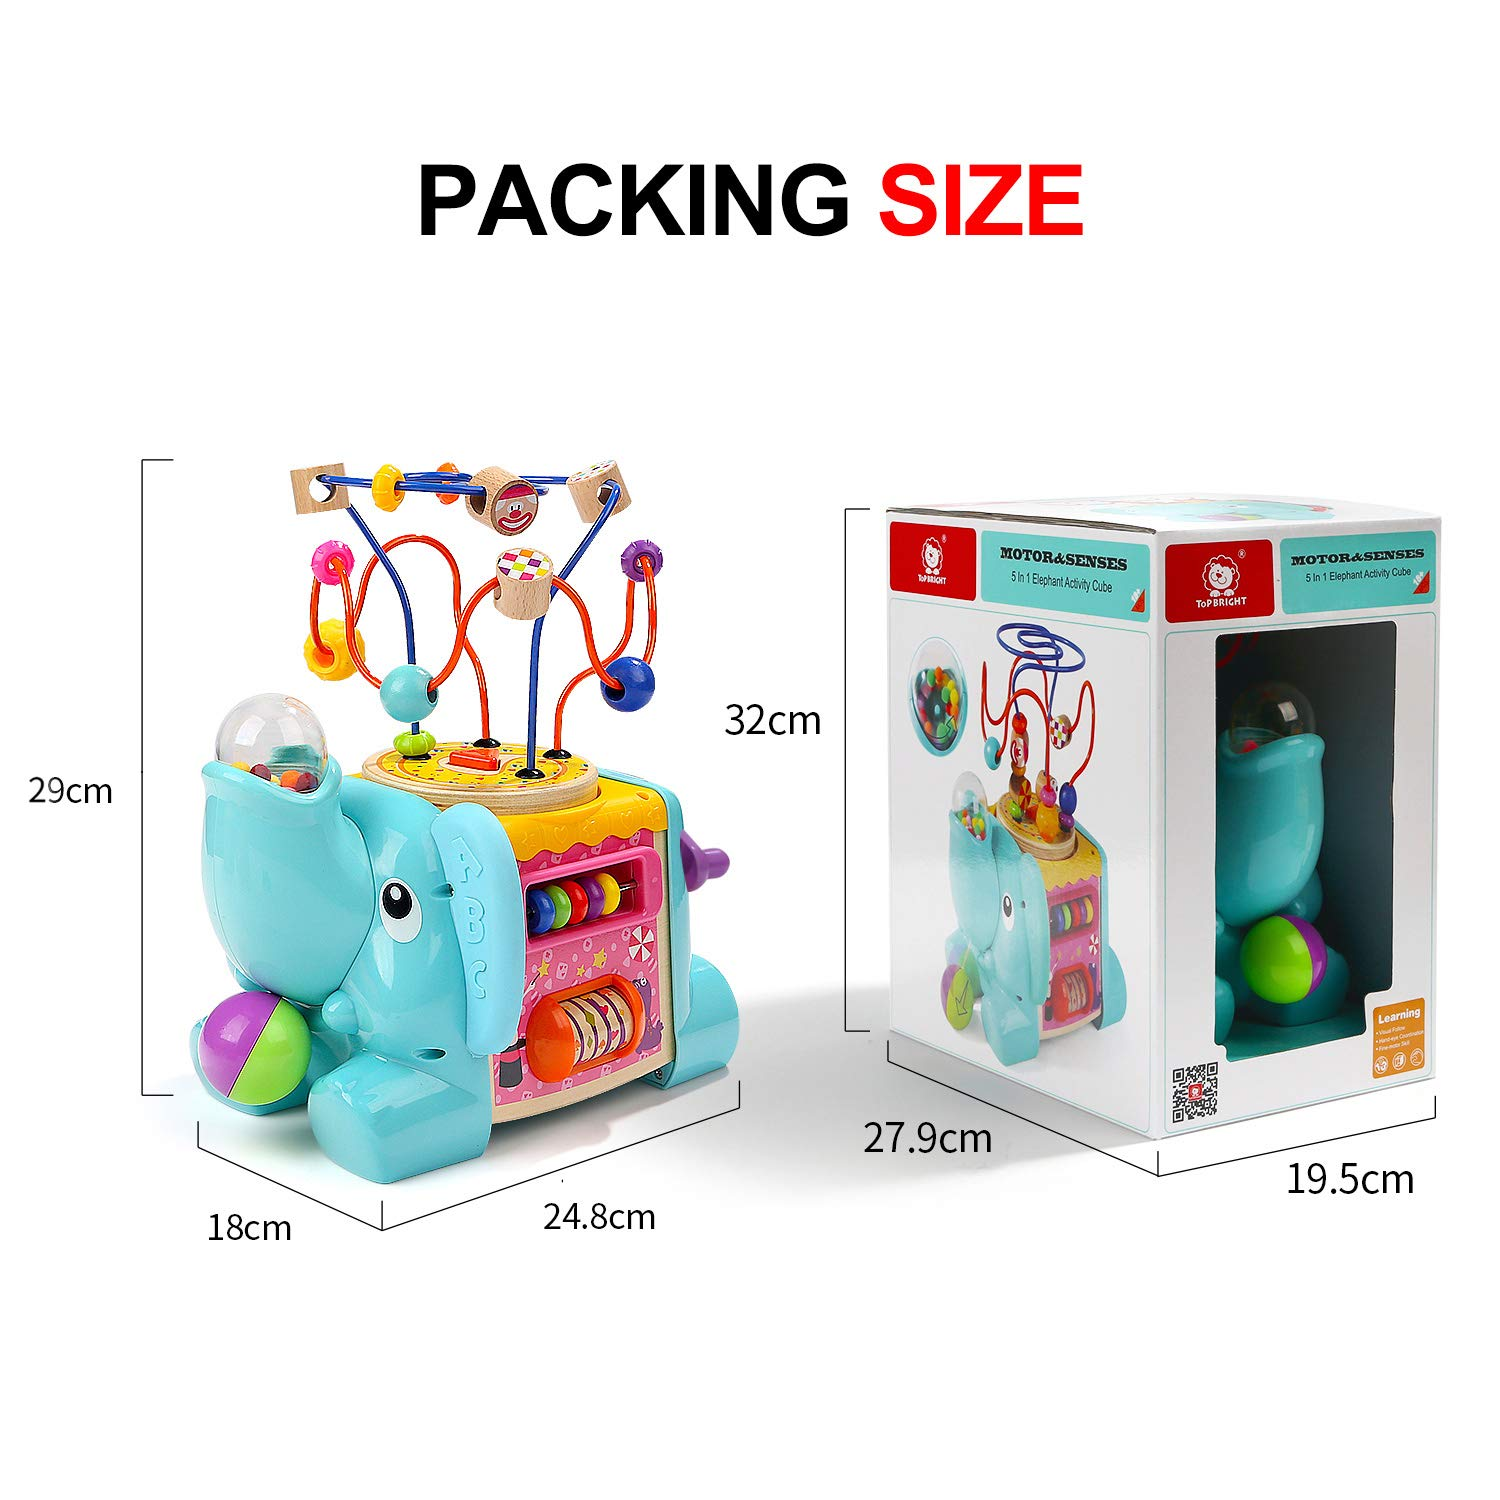 Top Bright Activity Cube Baby Toy for 1 Year Old Boy and Girl Gift Toddler Toys for One Year Old Present